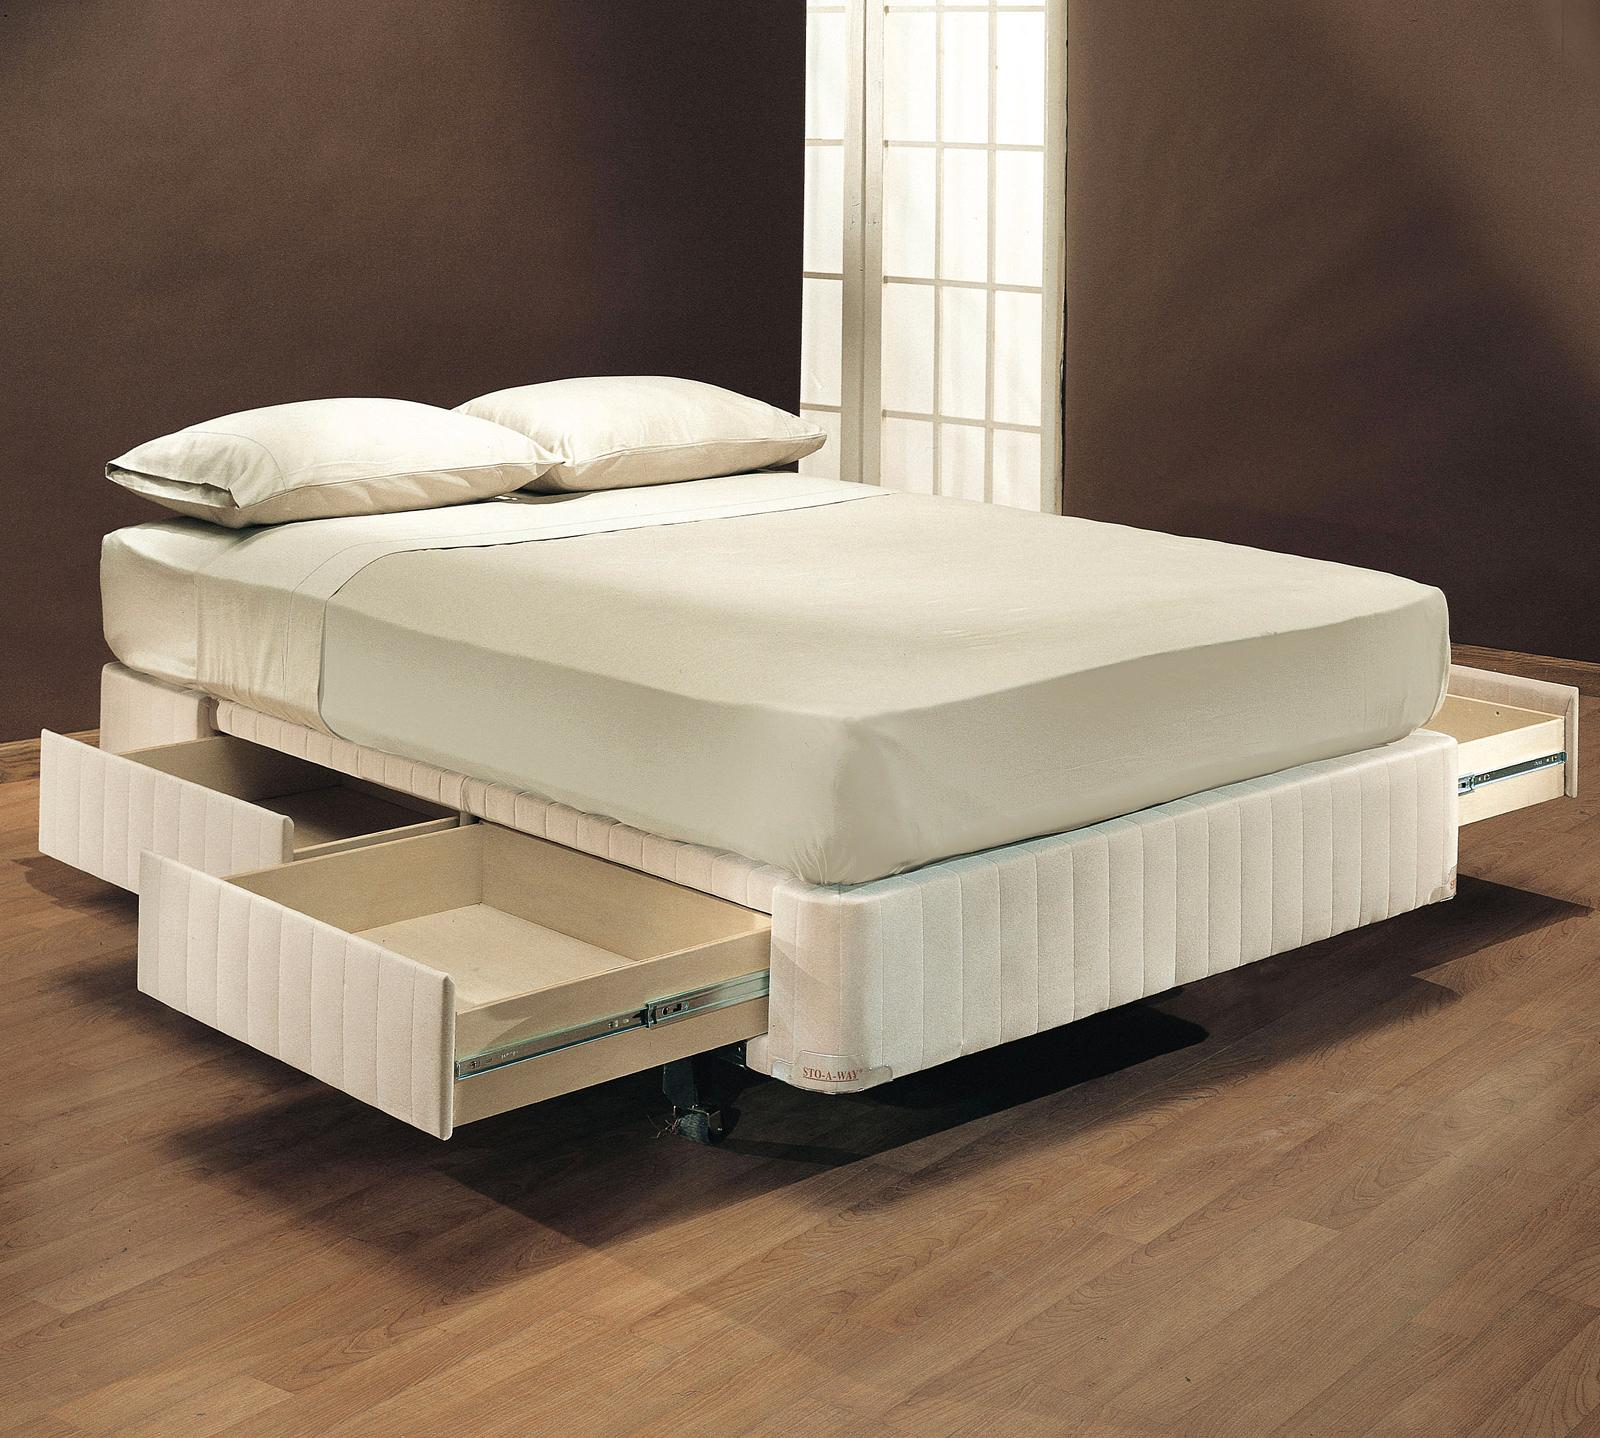 Image of: Awesome Full Size Mattress and Box Spring